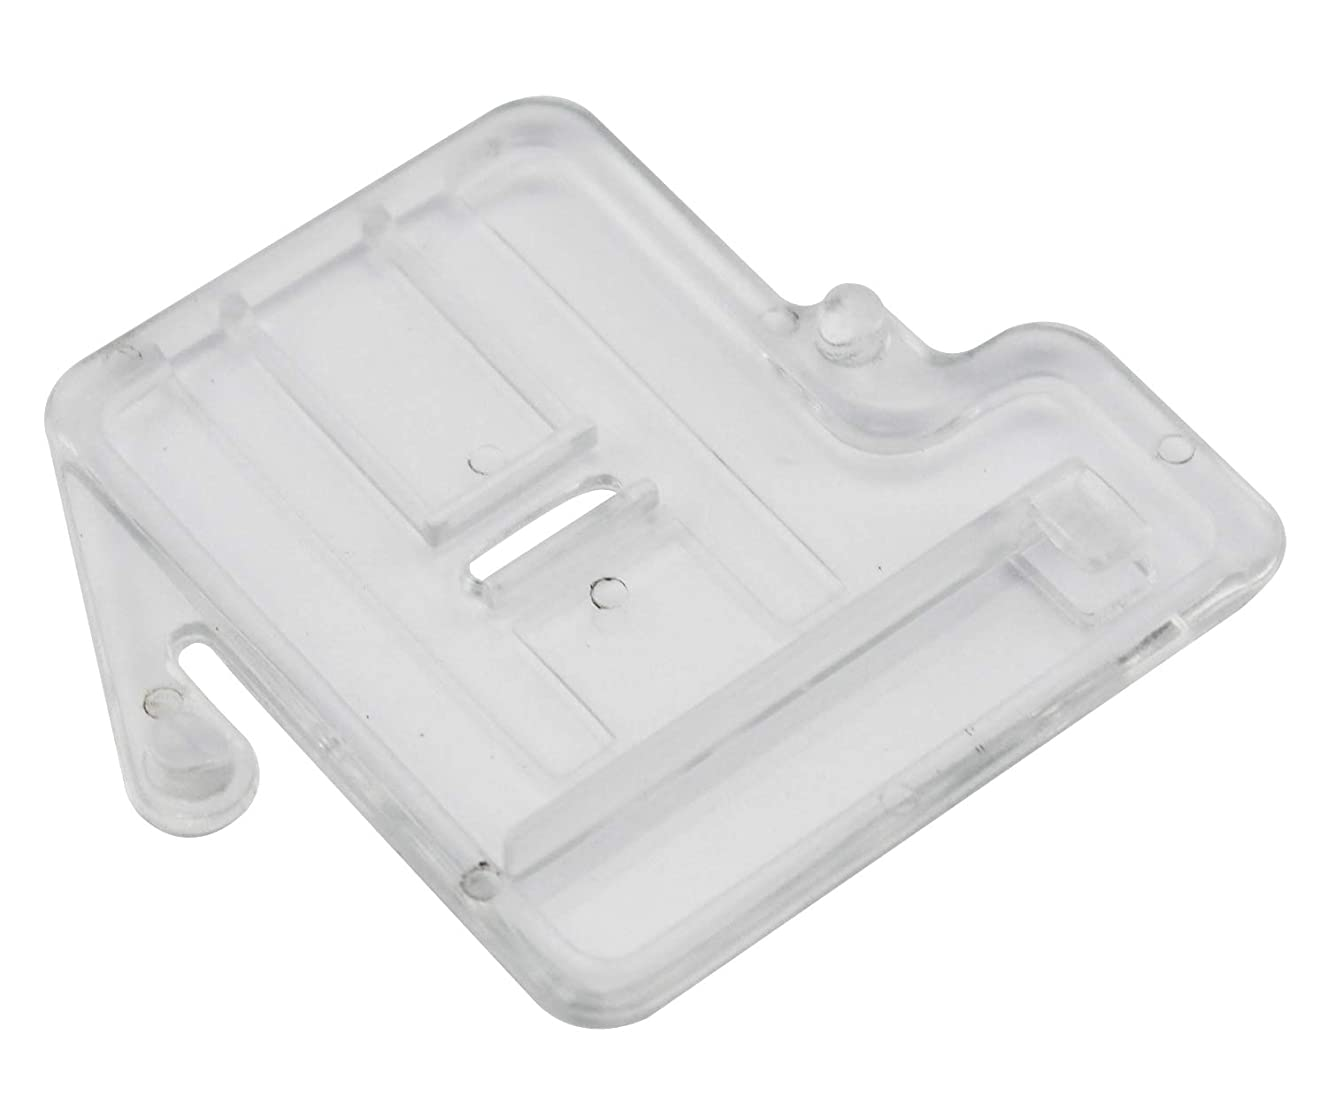 DREAMSTITCH 313117 Feed Cover Plate for Singer - 313117